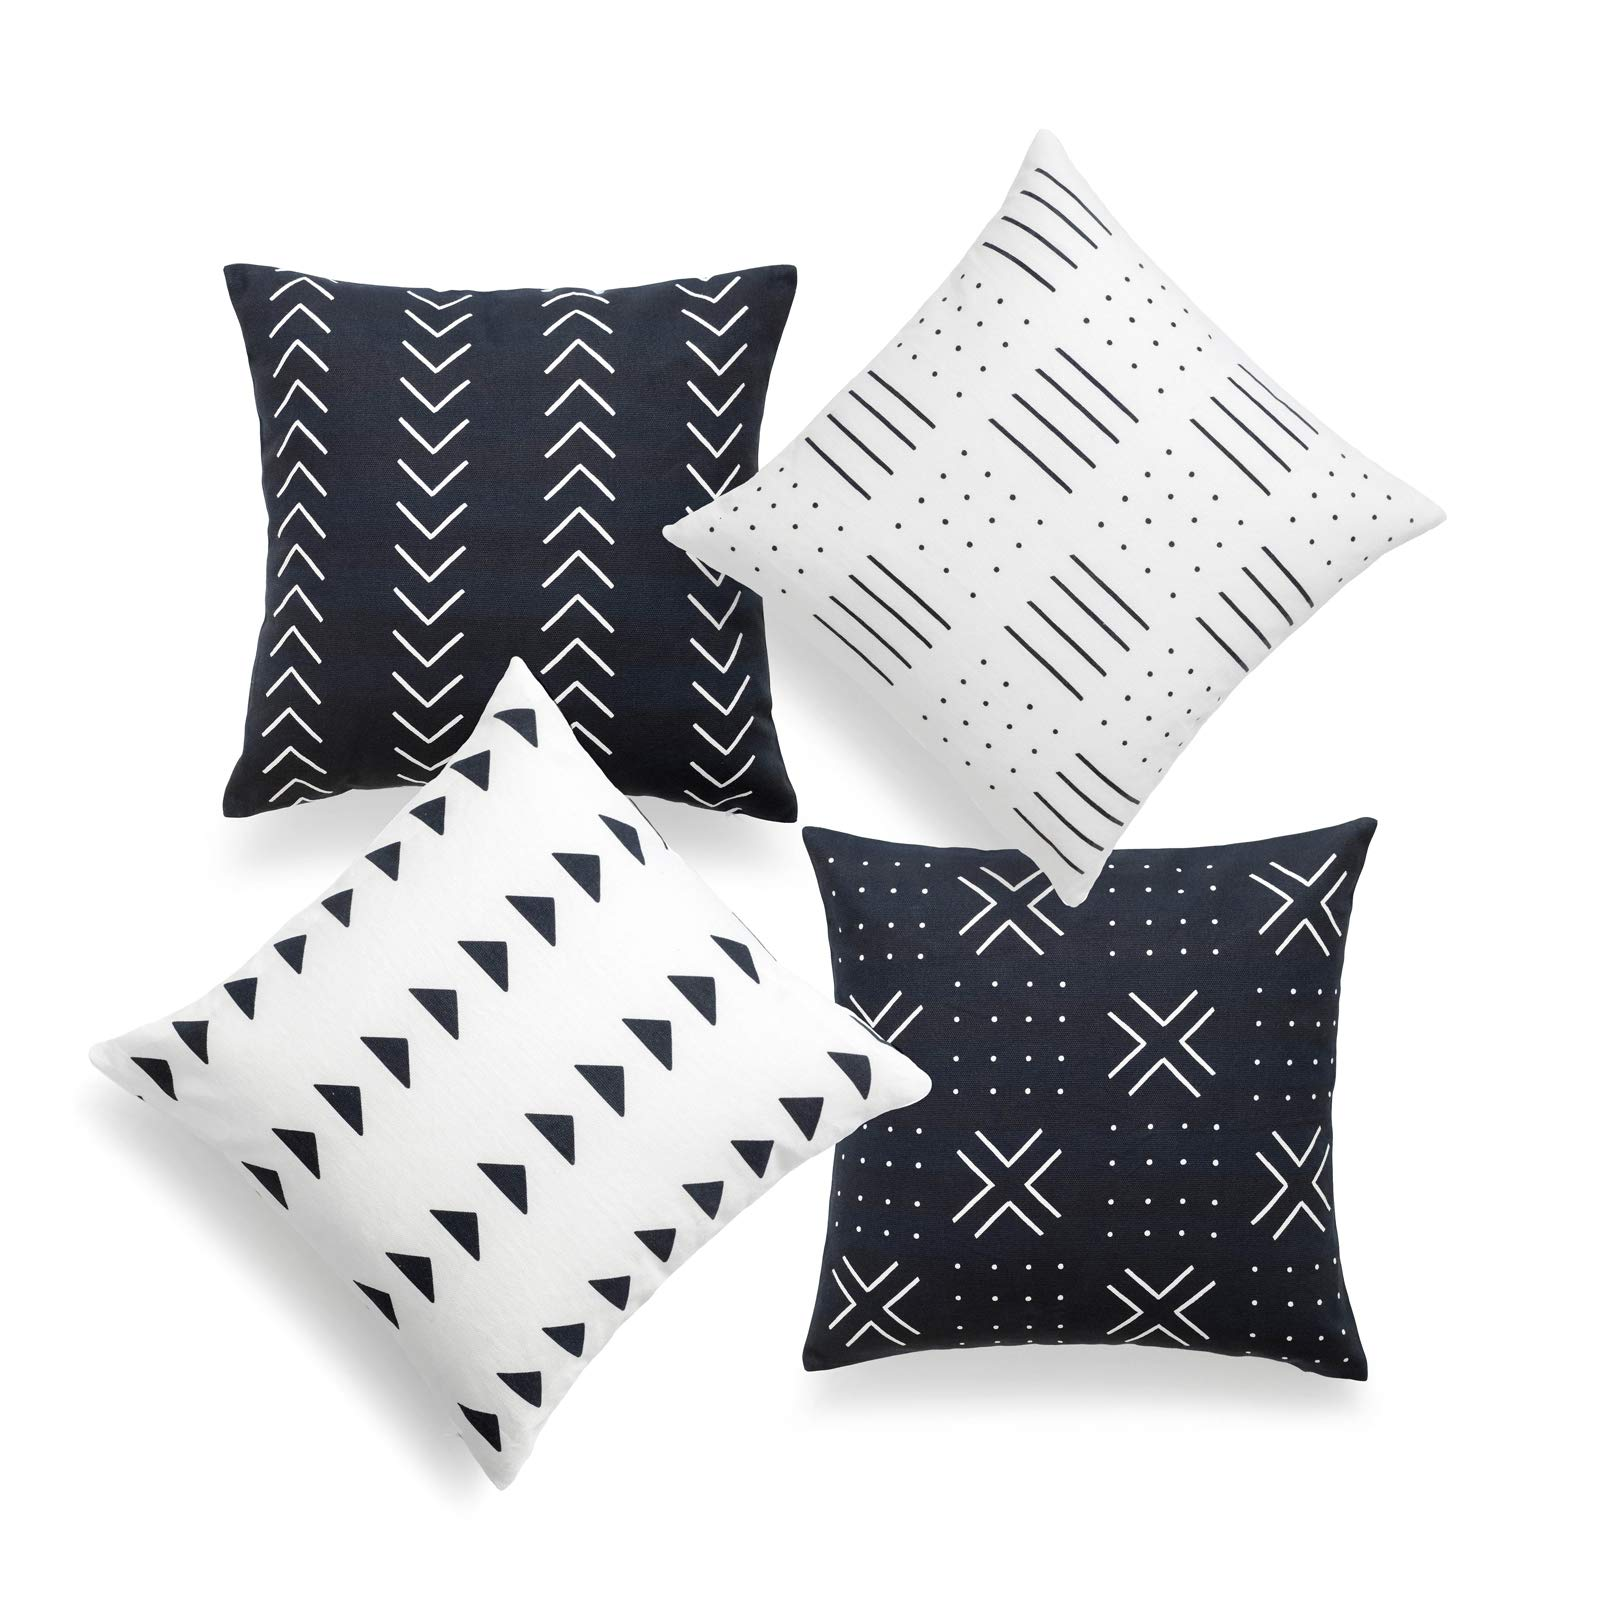 Hofdeco African Mudcloth Pillow Cover ONLY, Black and White, 18''x18'', Set of 4